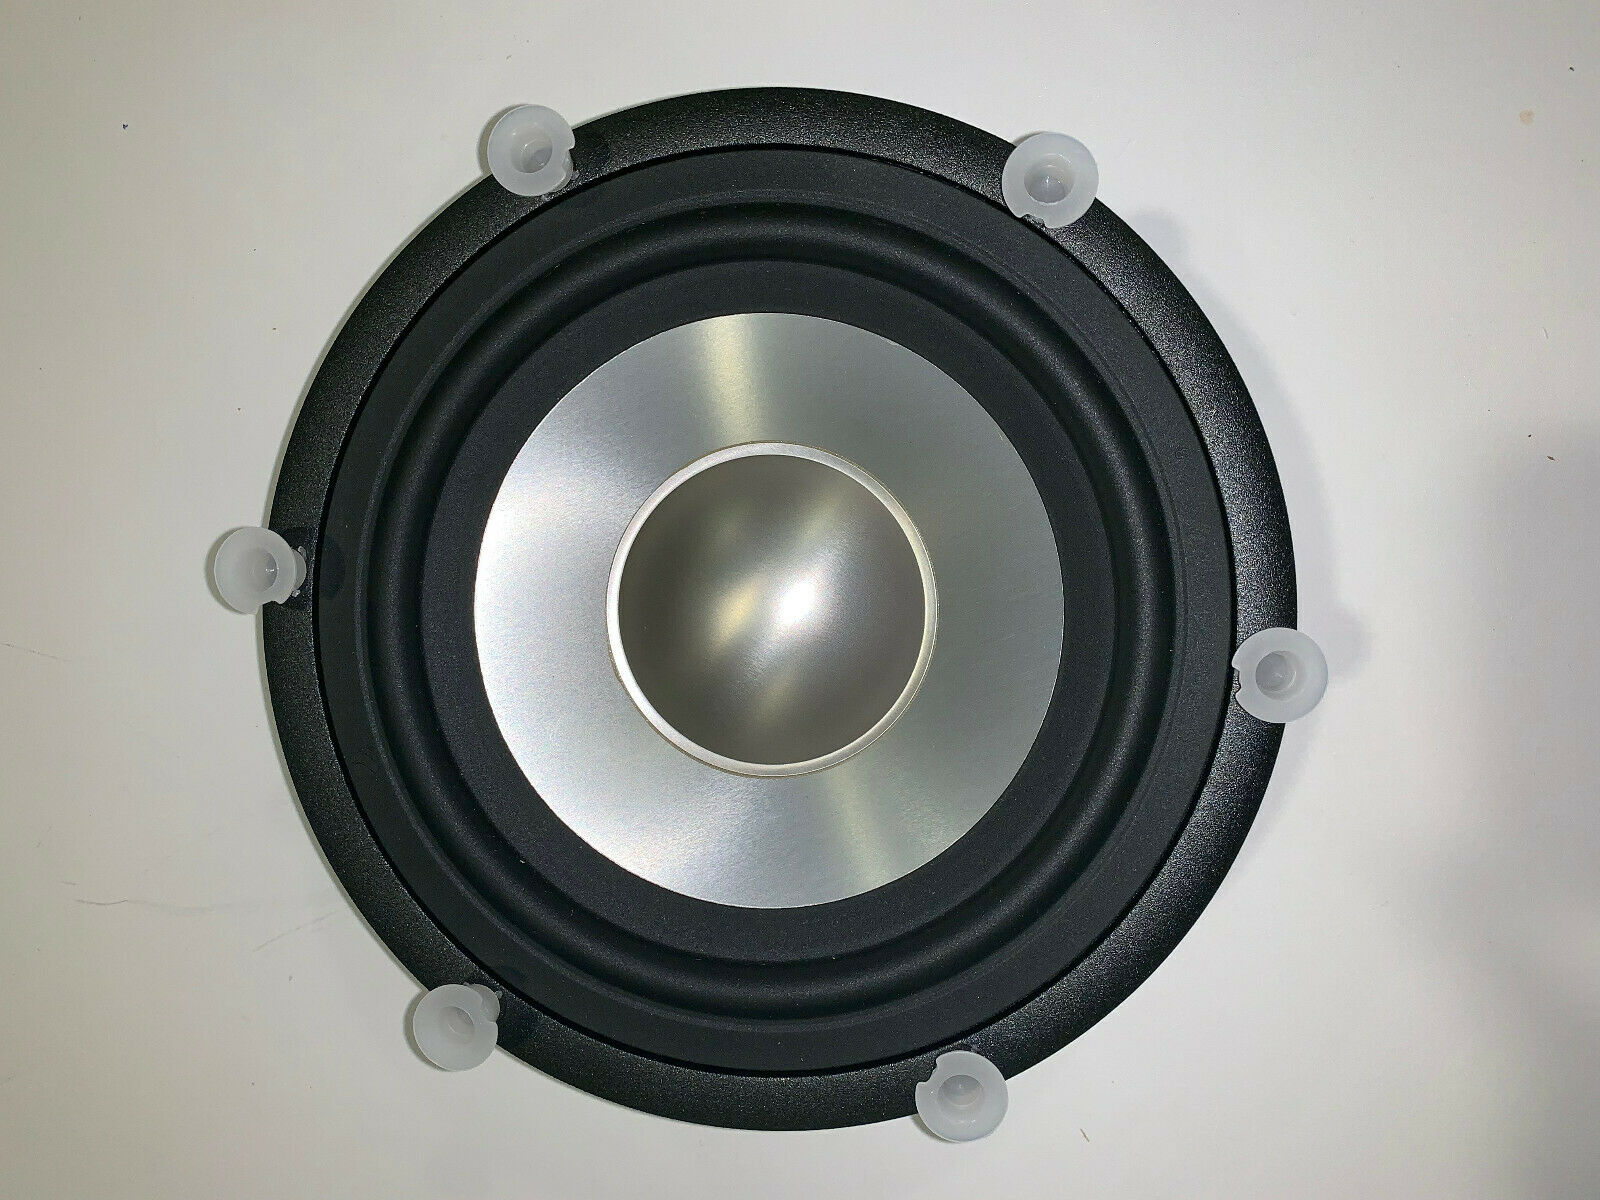 Amphion Radiator for One18 or Two18